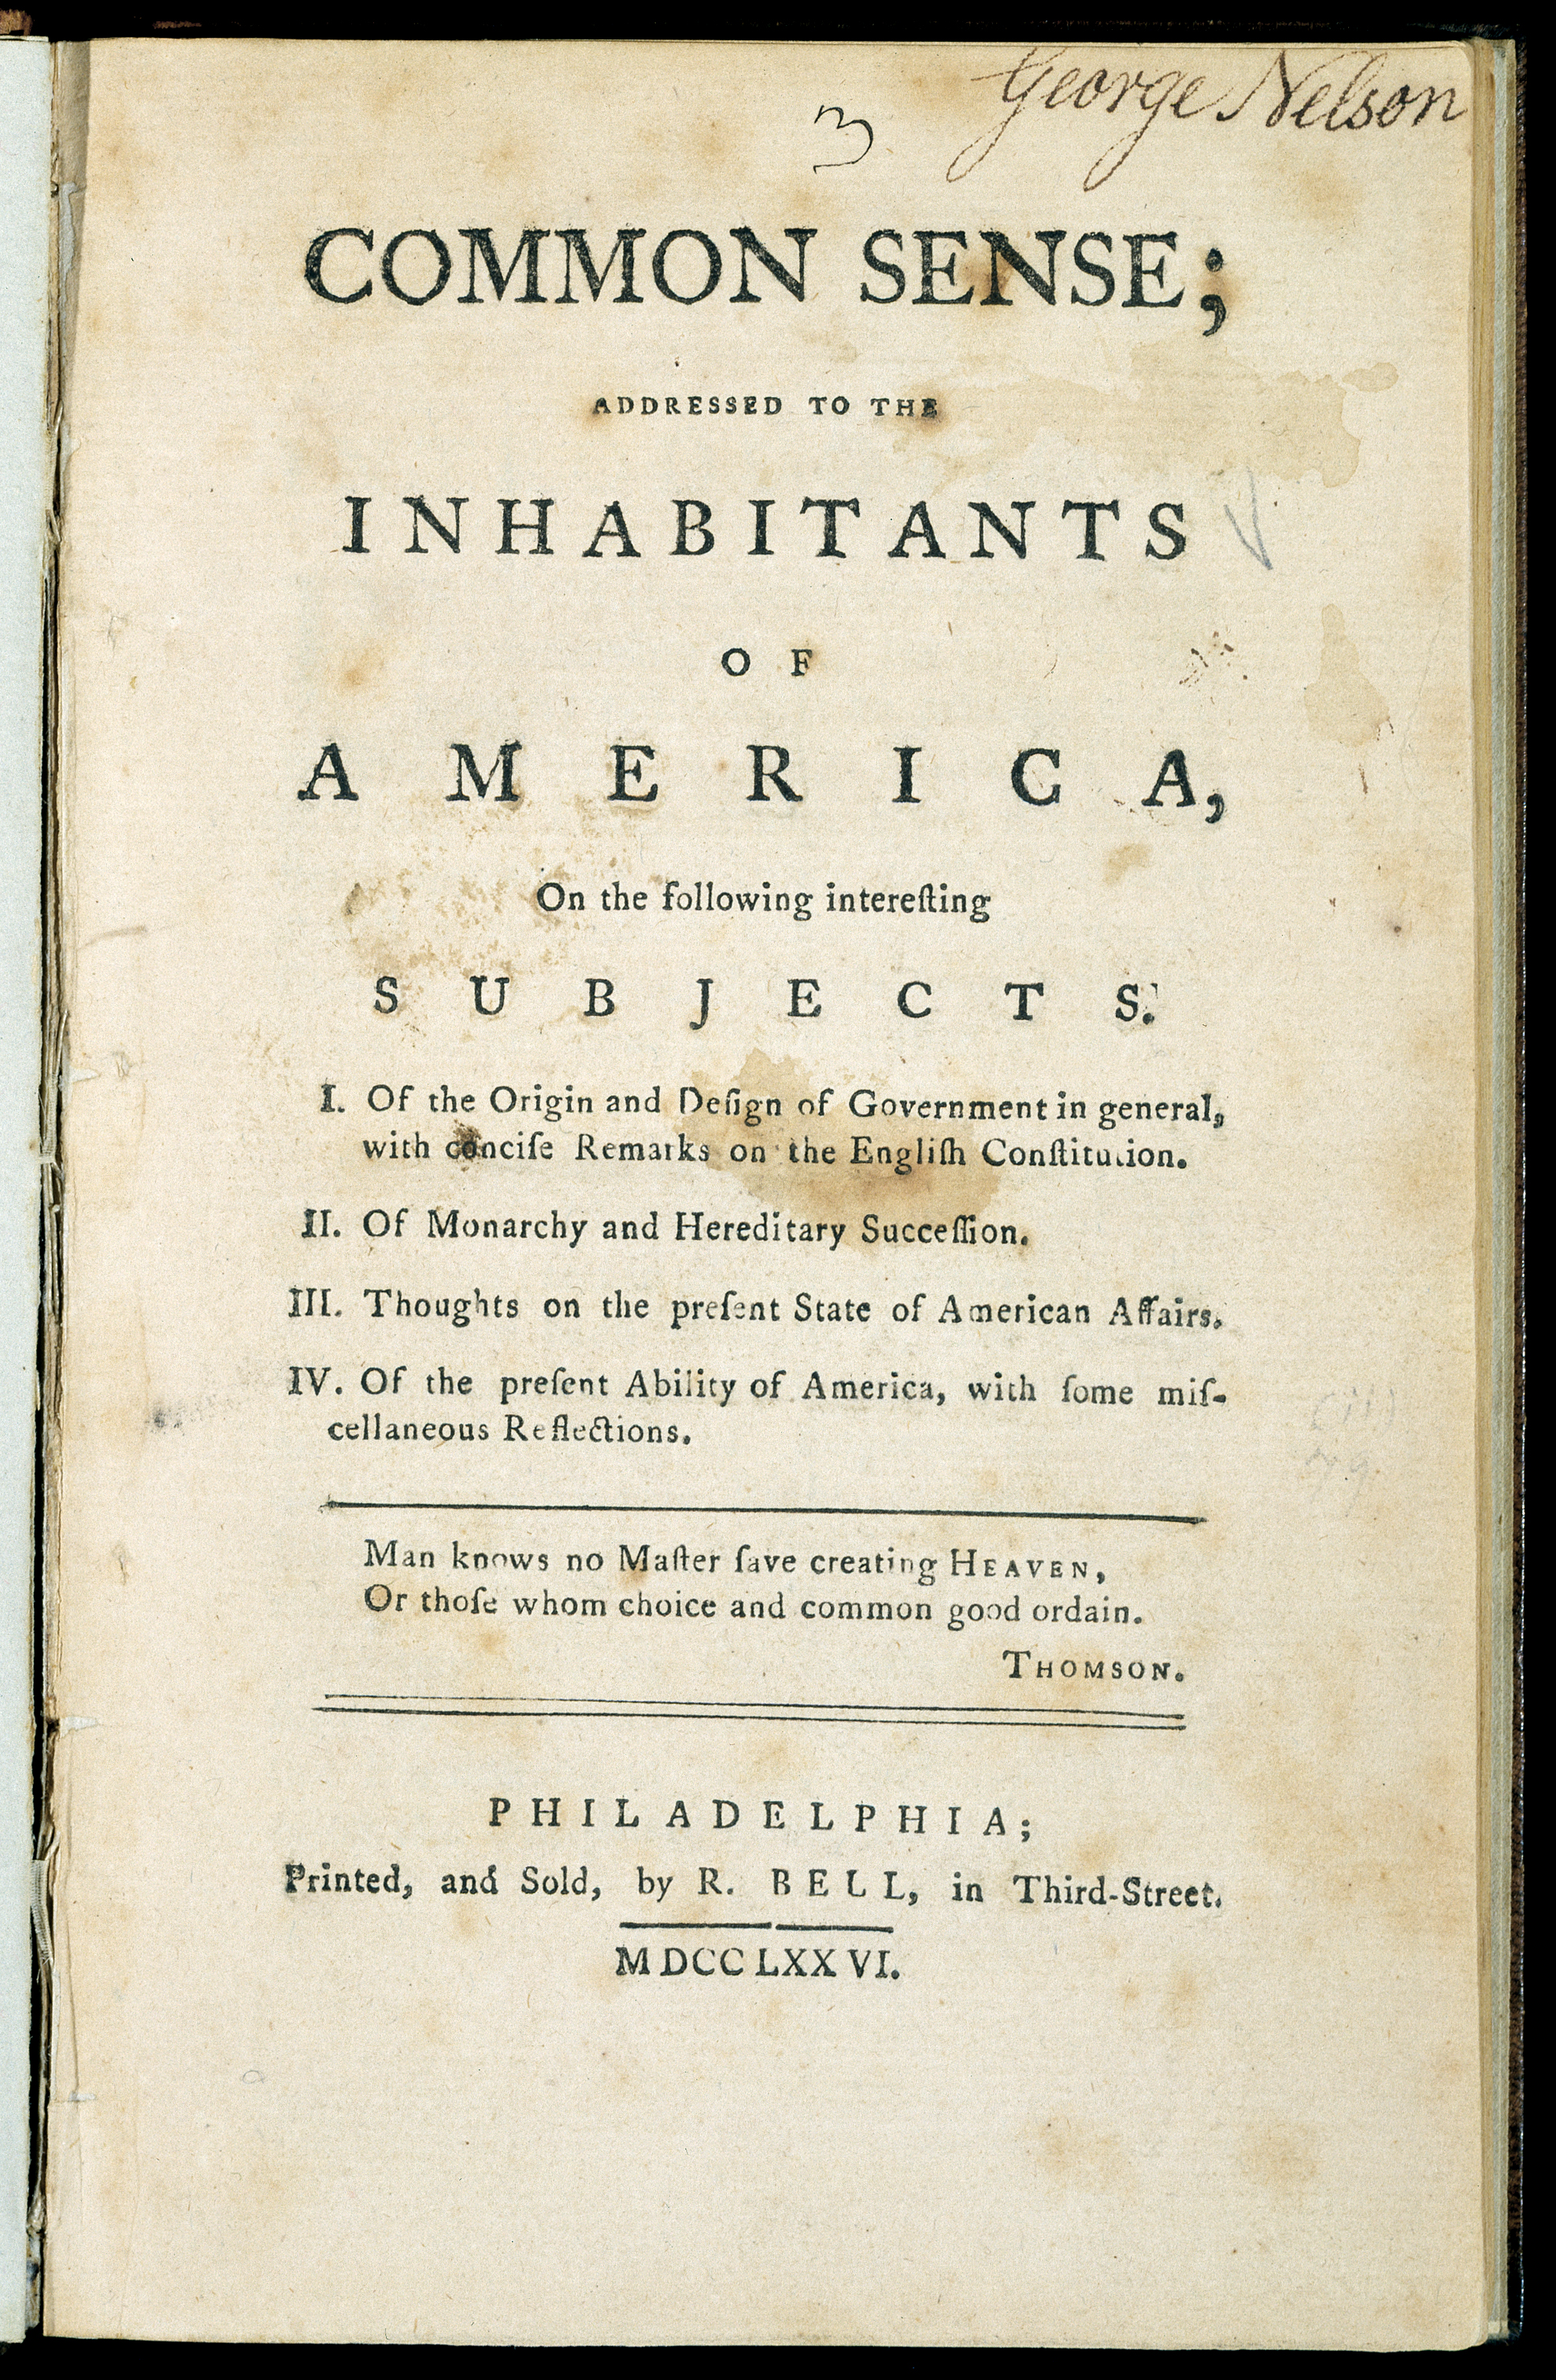 Cover of the first edition of Thomas Paine's 1776 pamphlet, Common Sense.